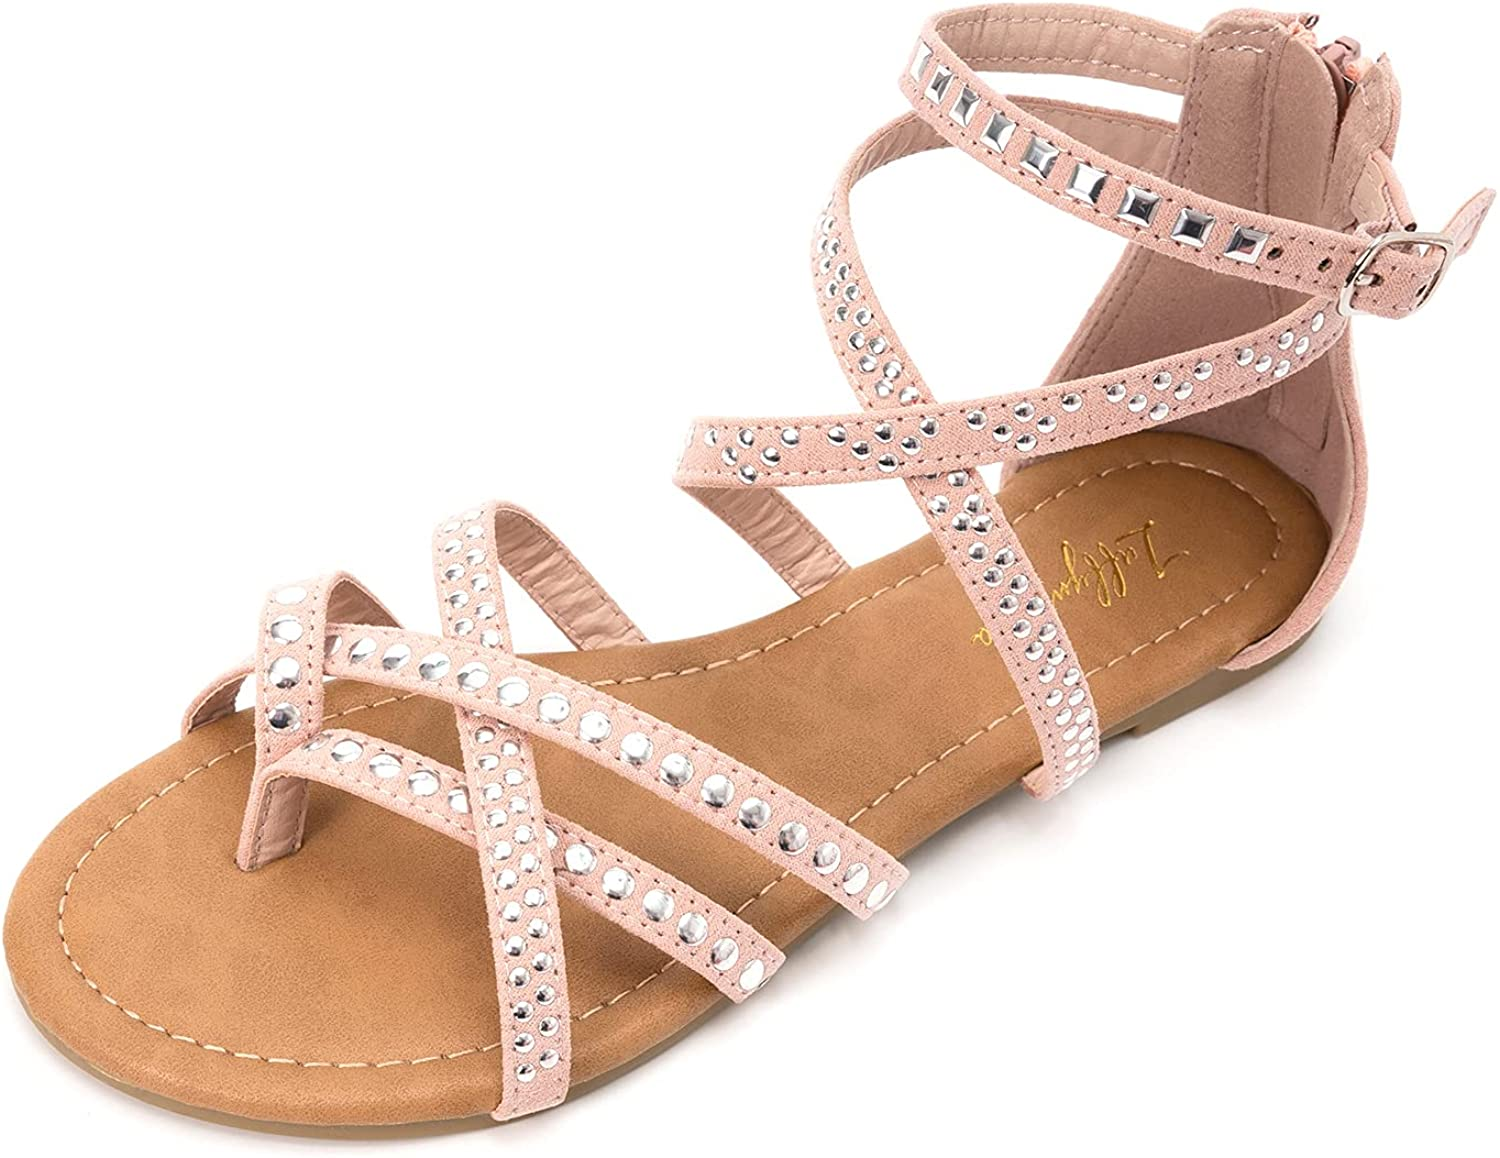 LUFFYMOMO Women's Cross Strappy Sandals Fisherman Gla Thong Discount mail order Flat Charlotte Mall